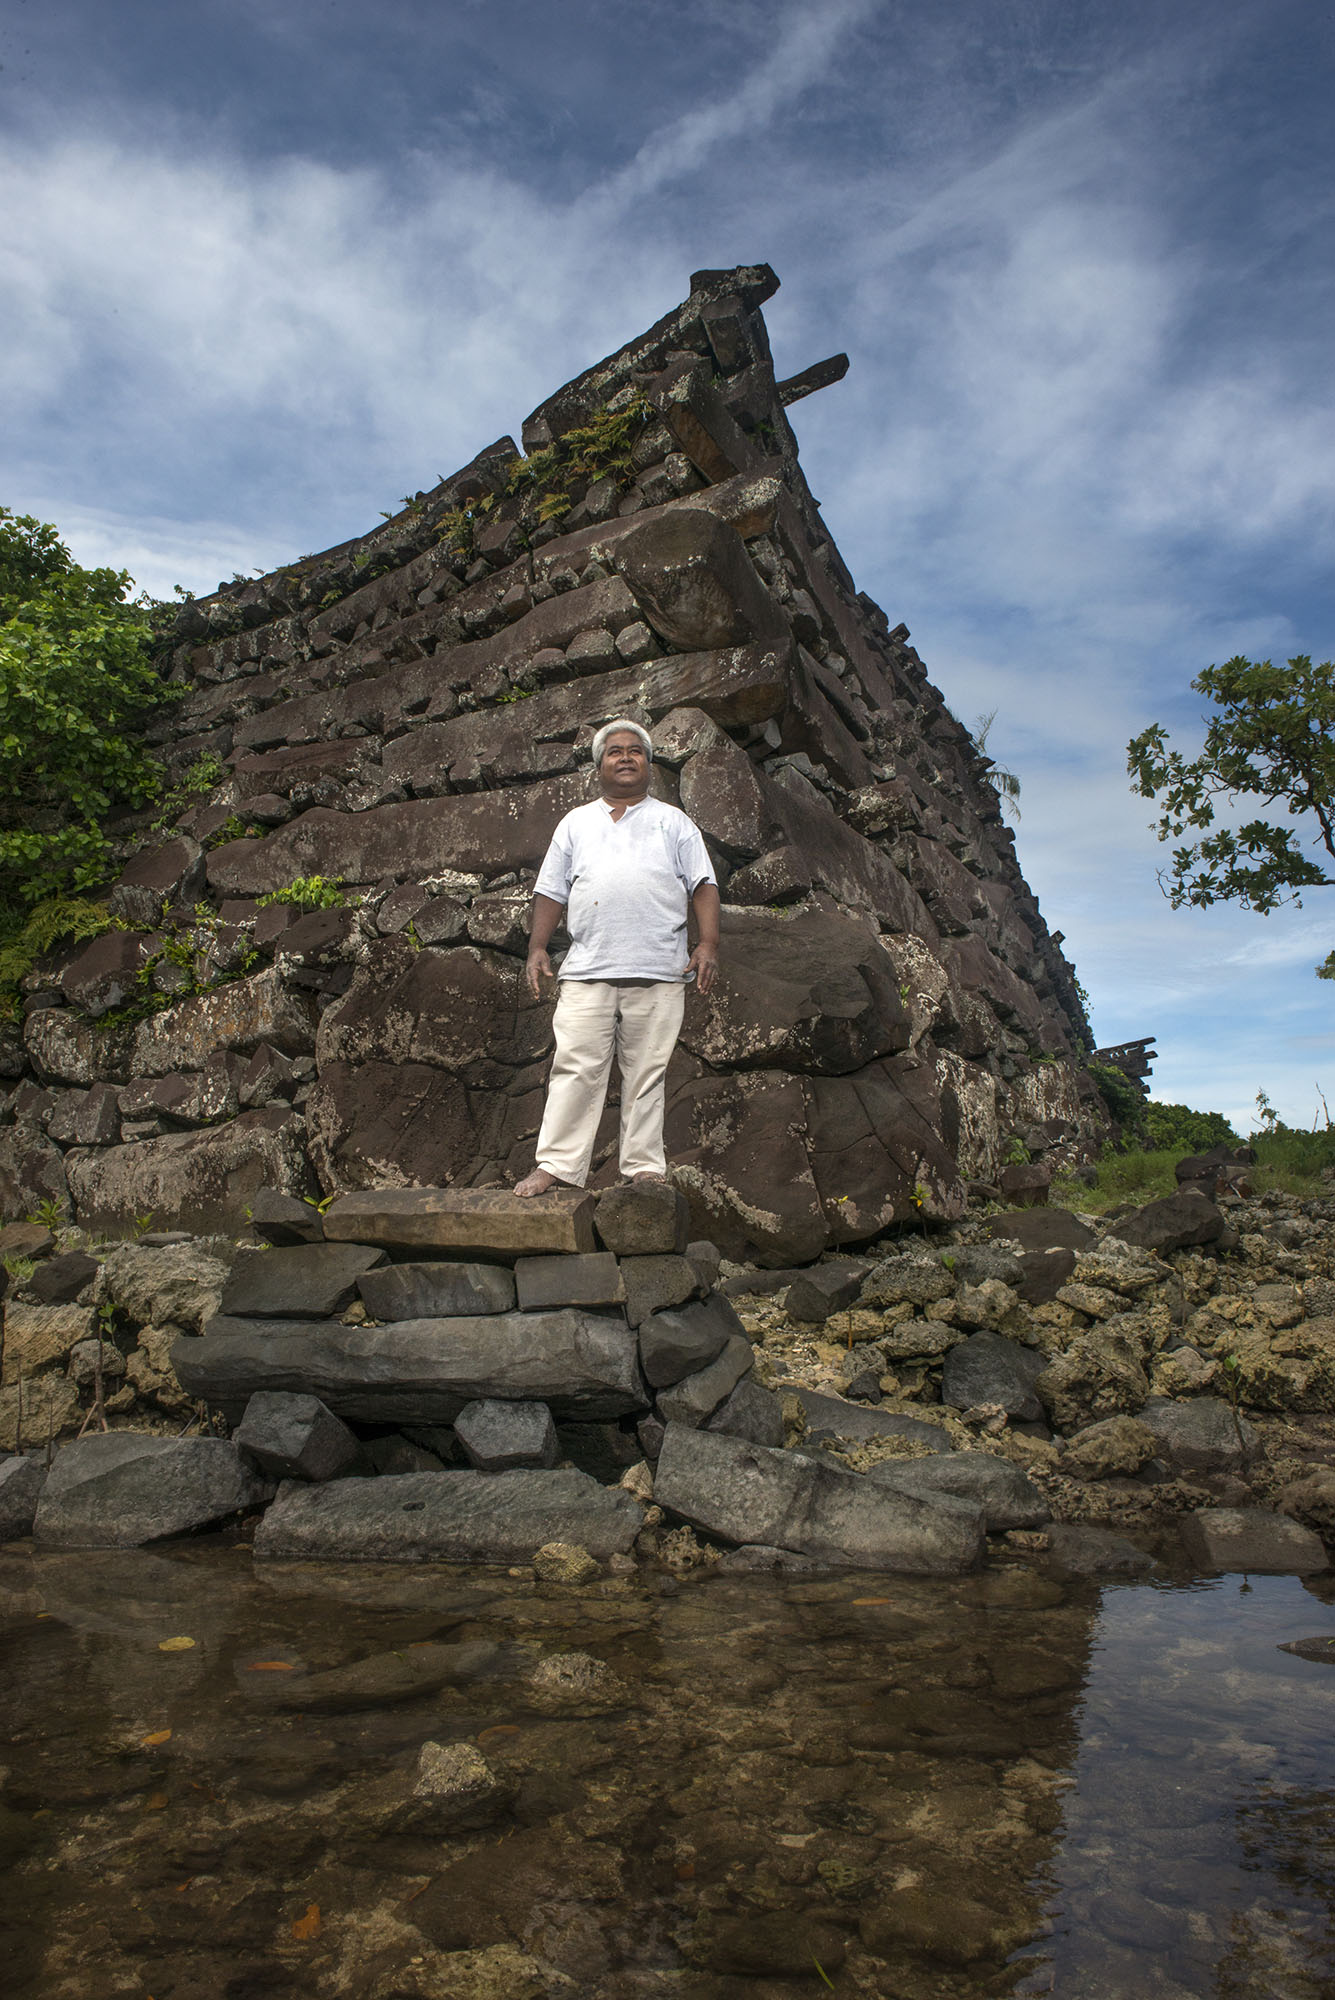 <p>Sam Saul at the the Nan Madol, located not far from his home. The ruined city is onthe eastern shore of Pohnpei and was the capital of the Saudeleur Dynasty until the early1600s.</p>